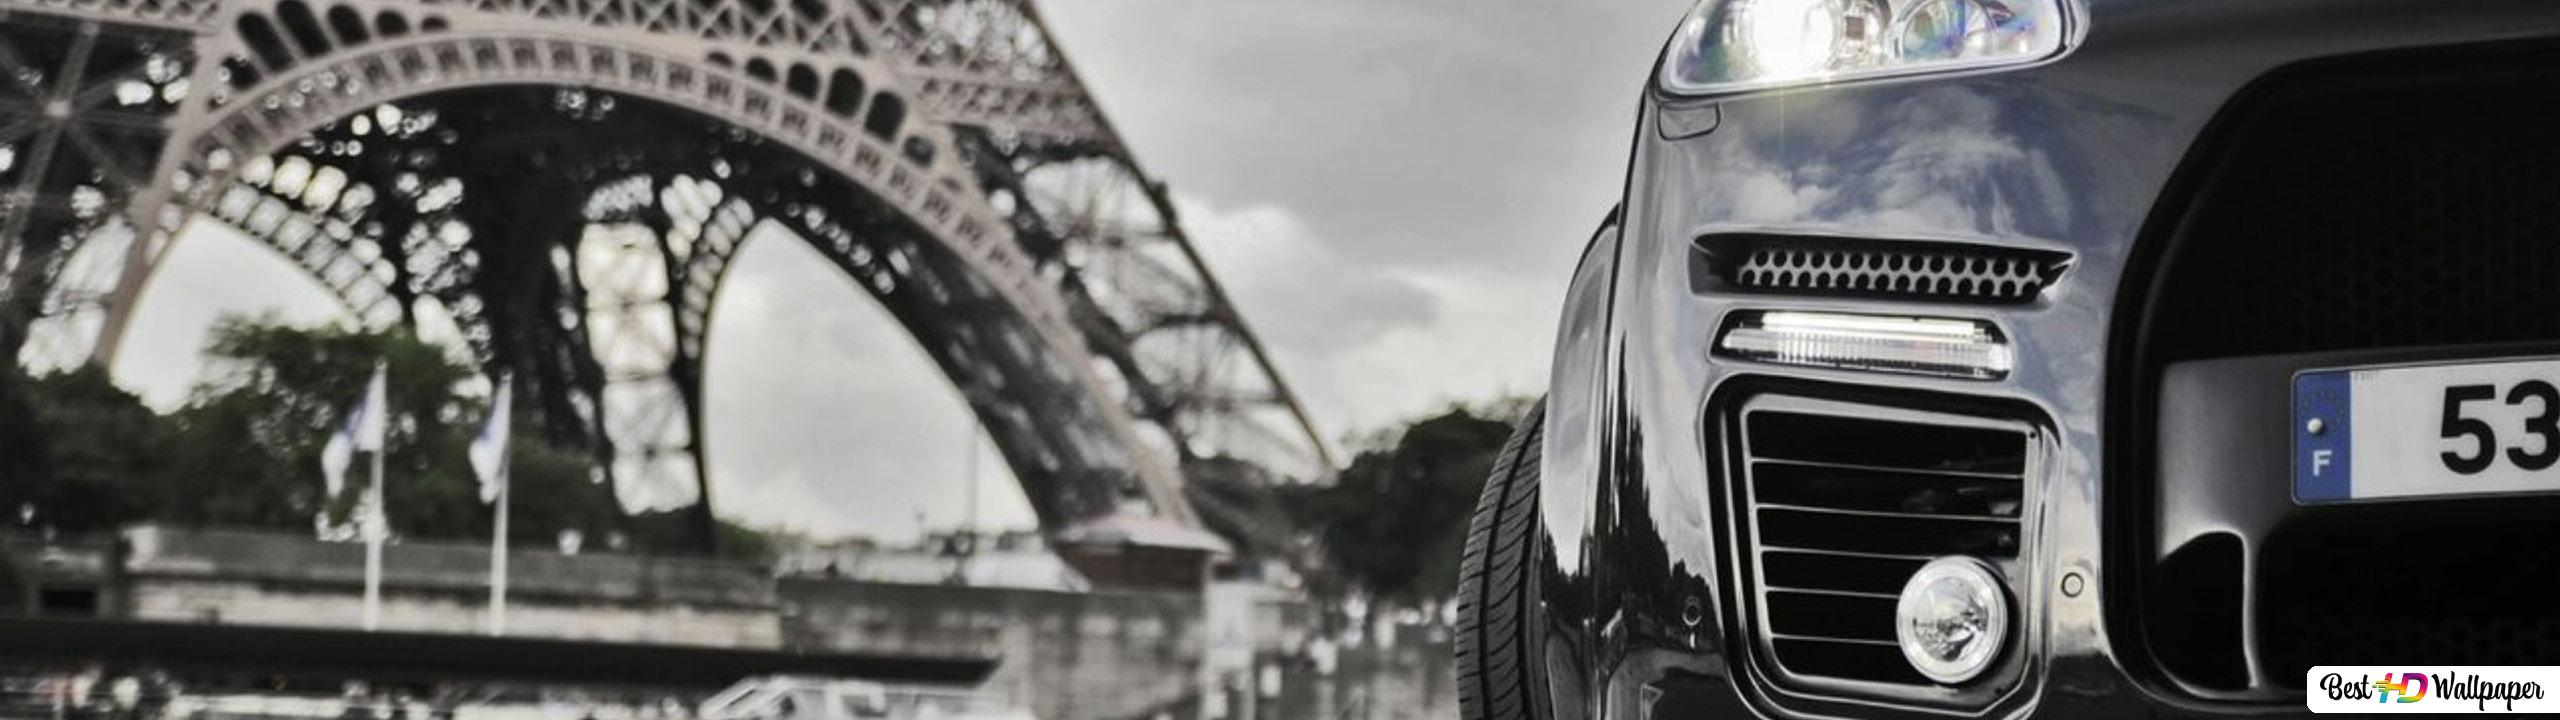 Porsche Cayenne At Eiffel Tower Hd Wallpaper Download